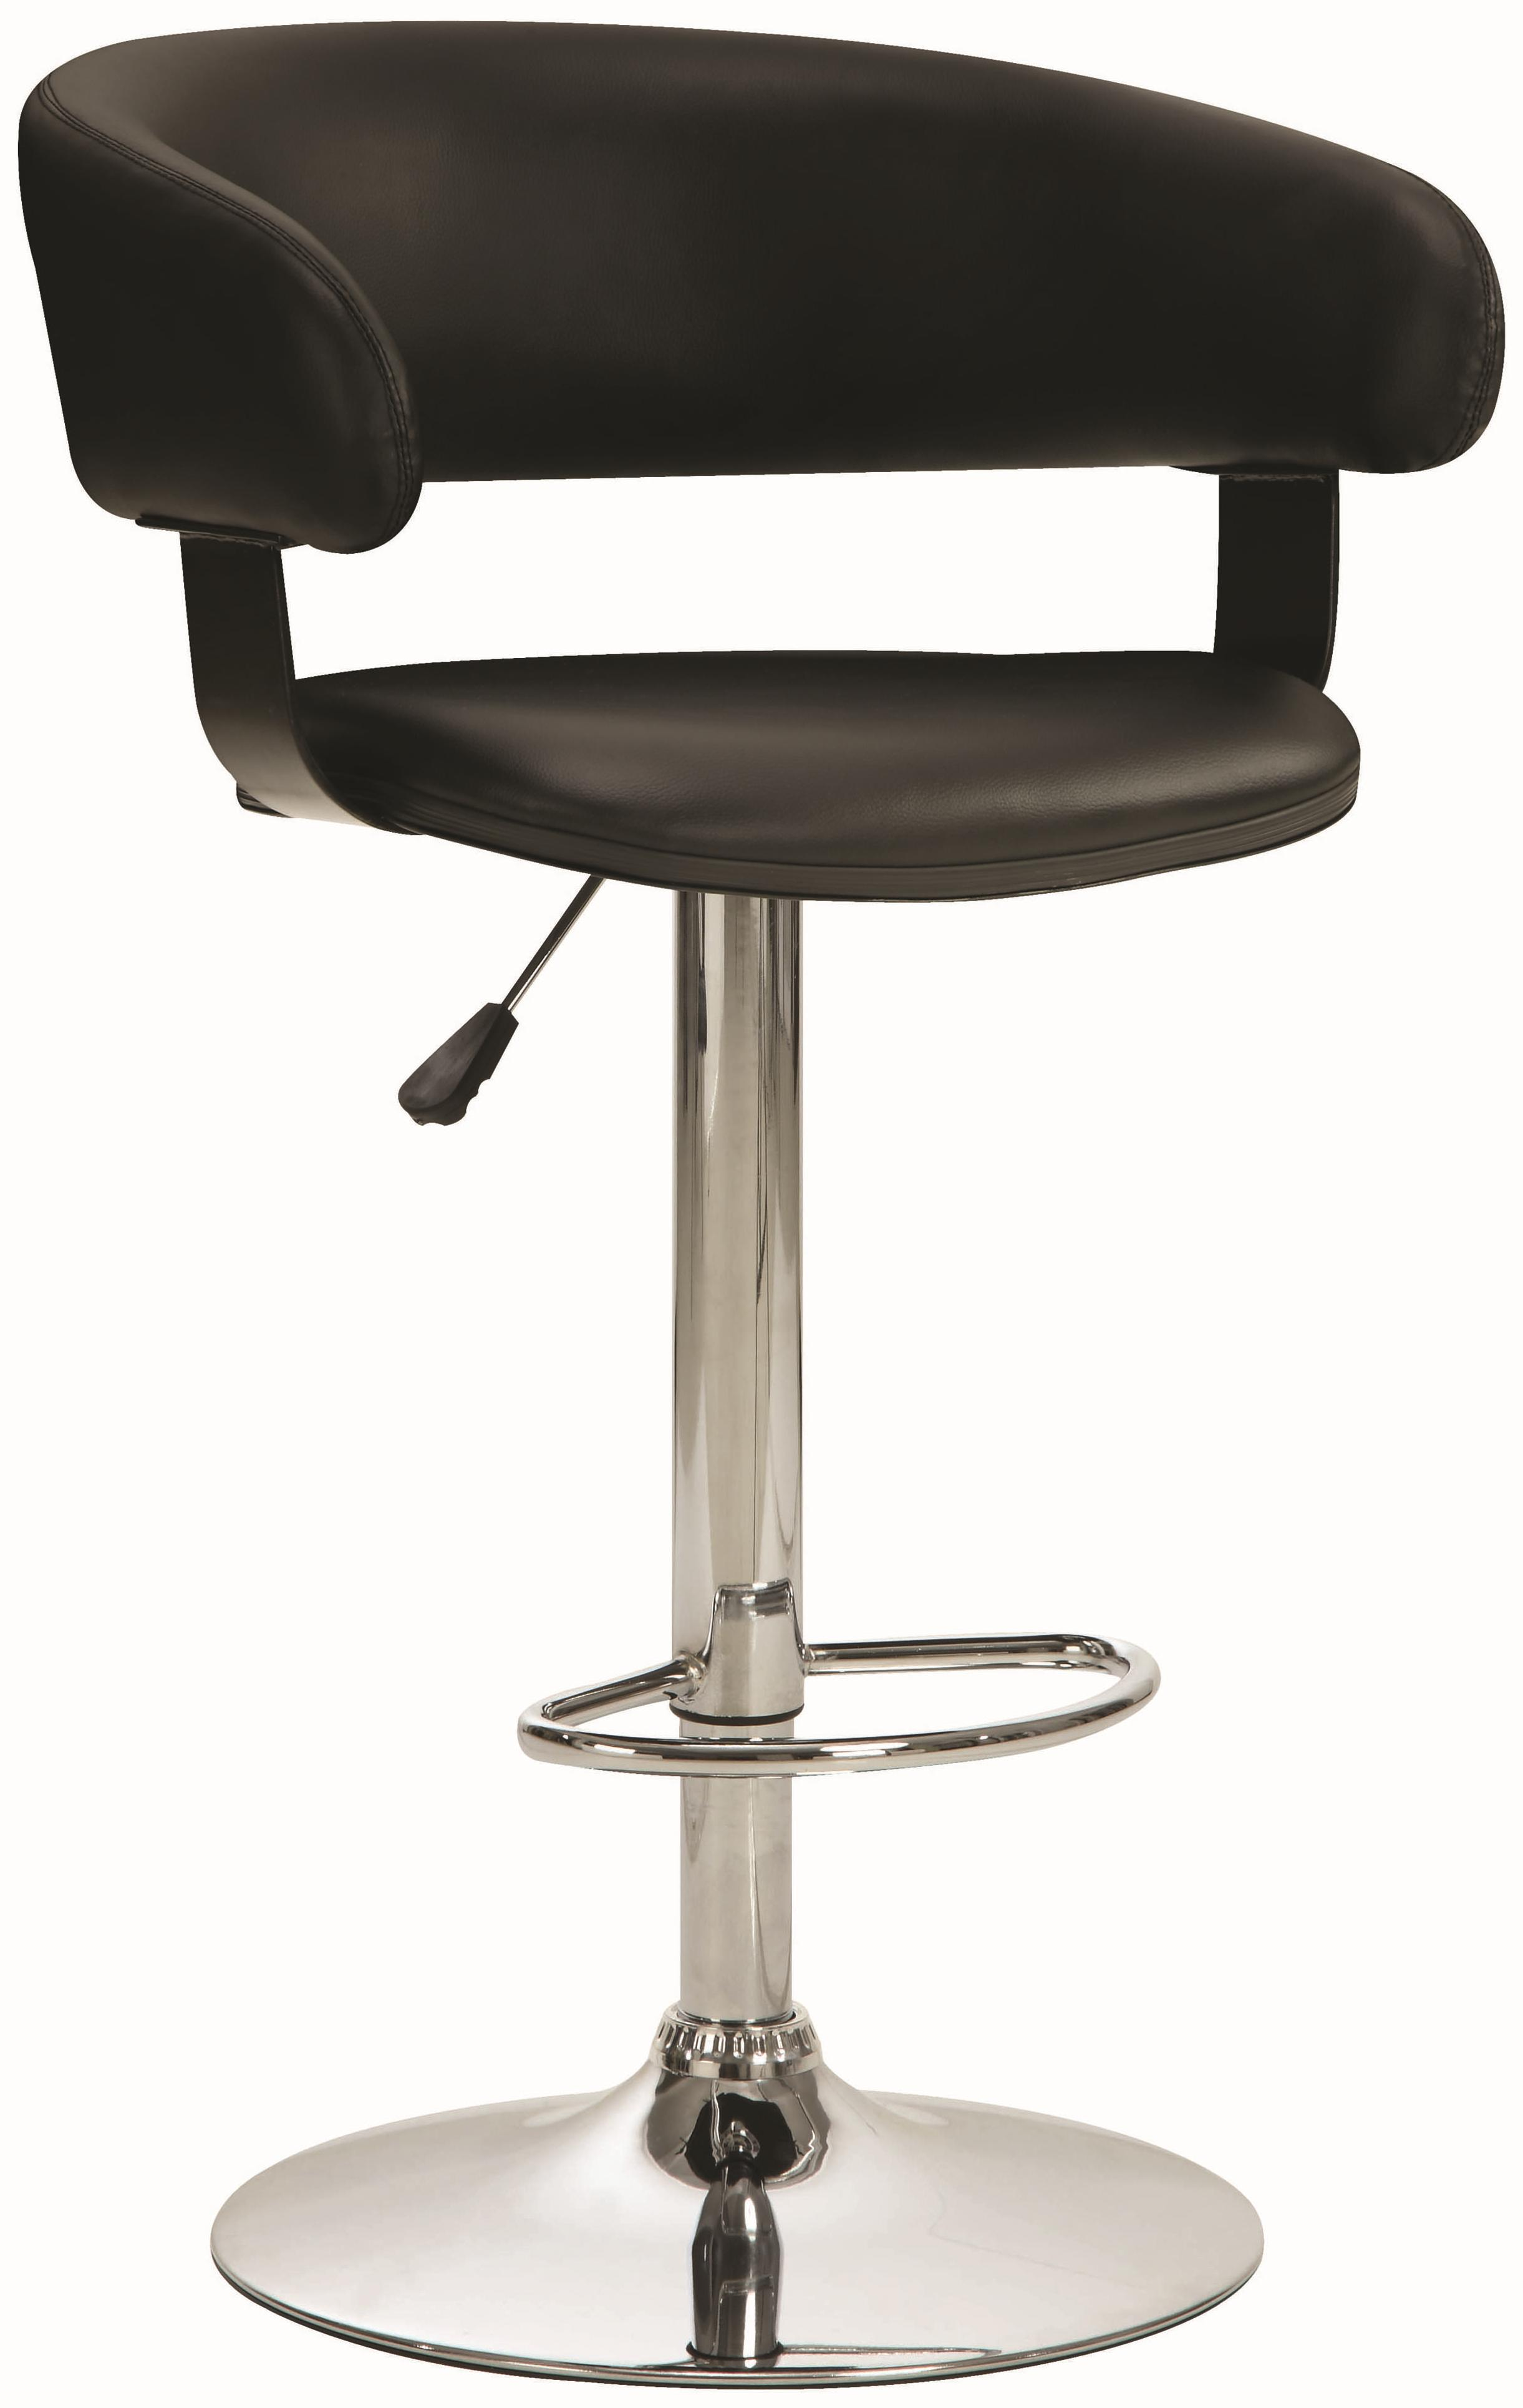 Coaster Dining Chairs and Bar Stools Bar Stool - Item Number: 122094